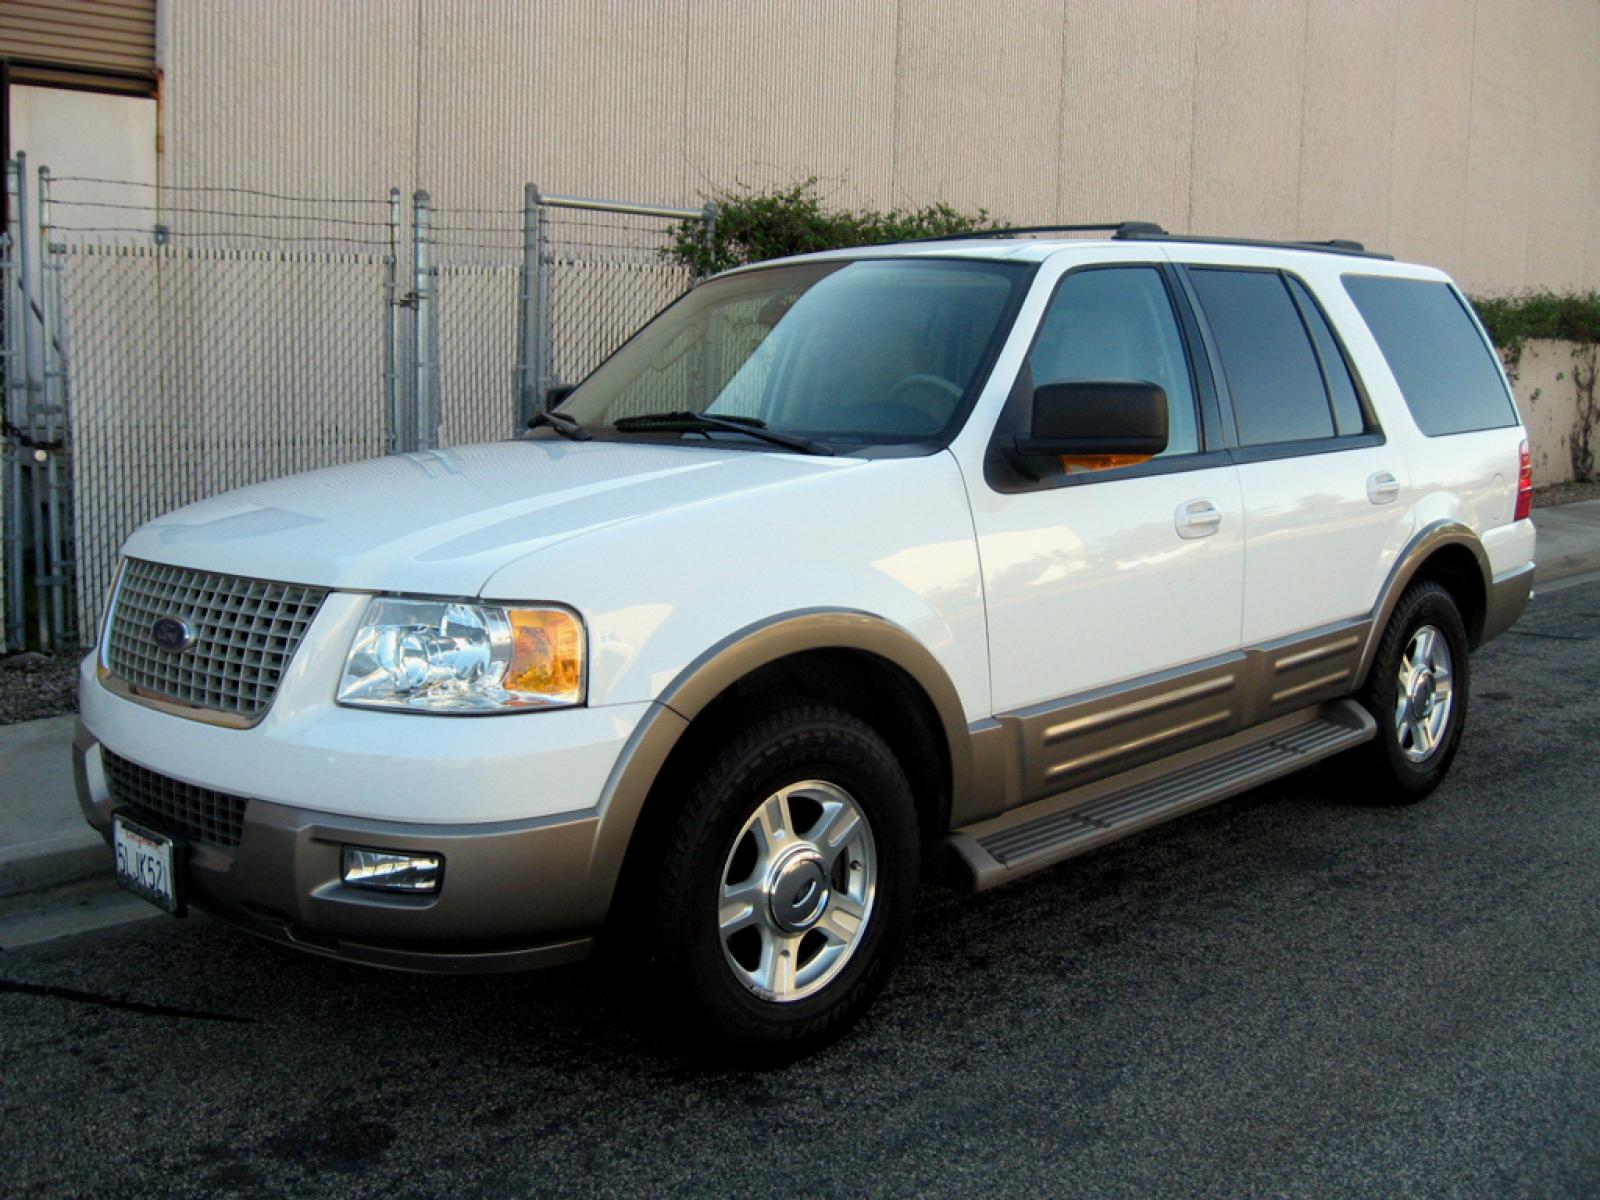 2004 Ford Expedition Information And Photos Zombiedrive